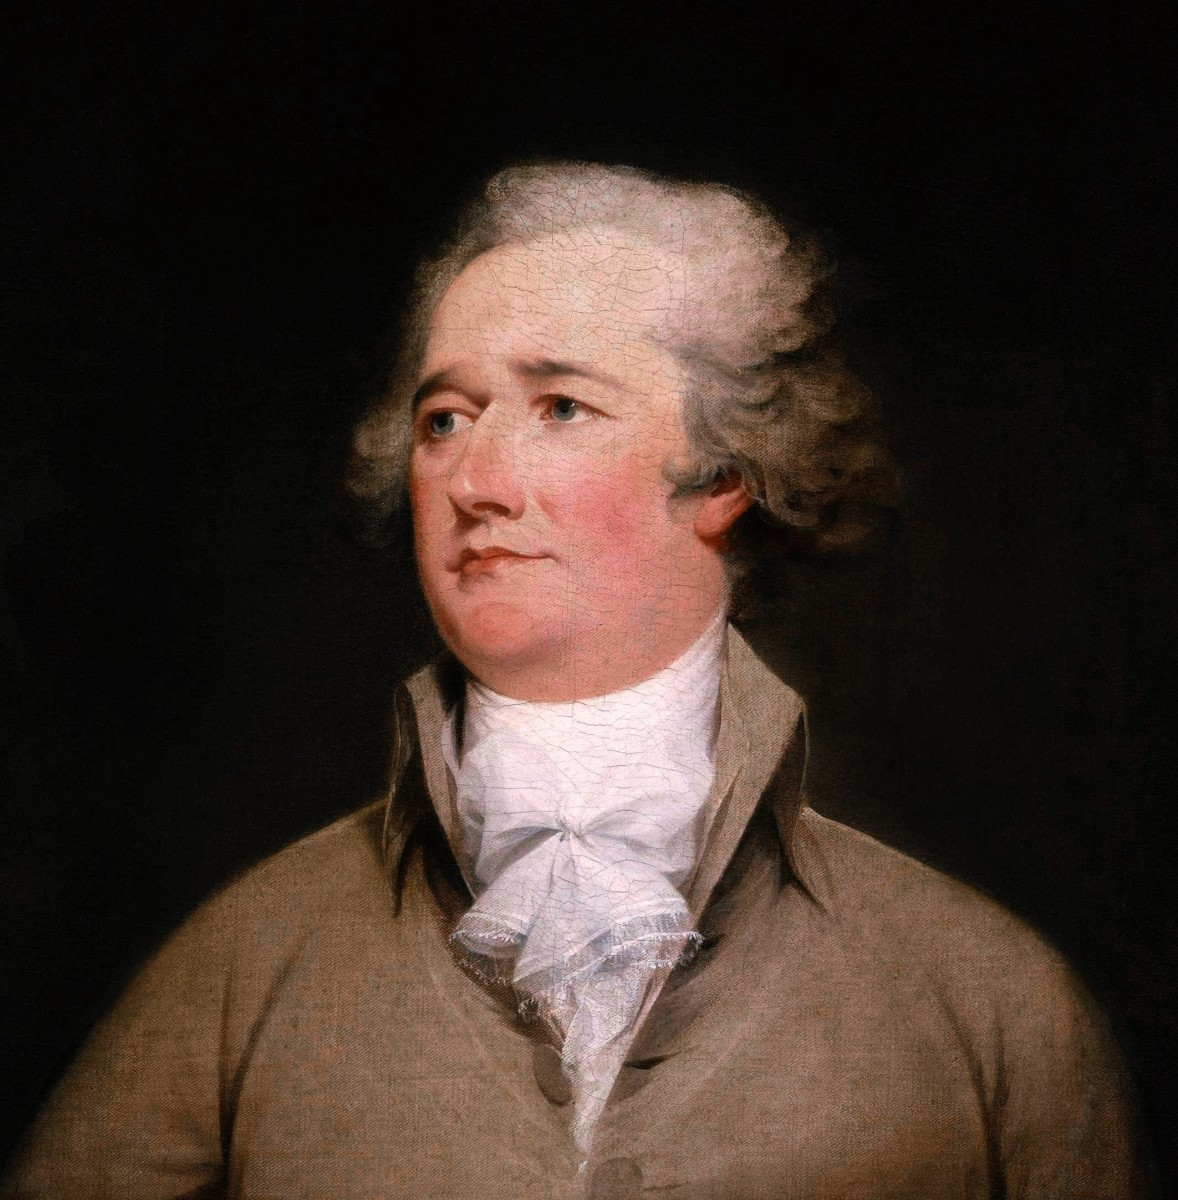 Alexander Hamilton—American Statesman and Founding Father